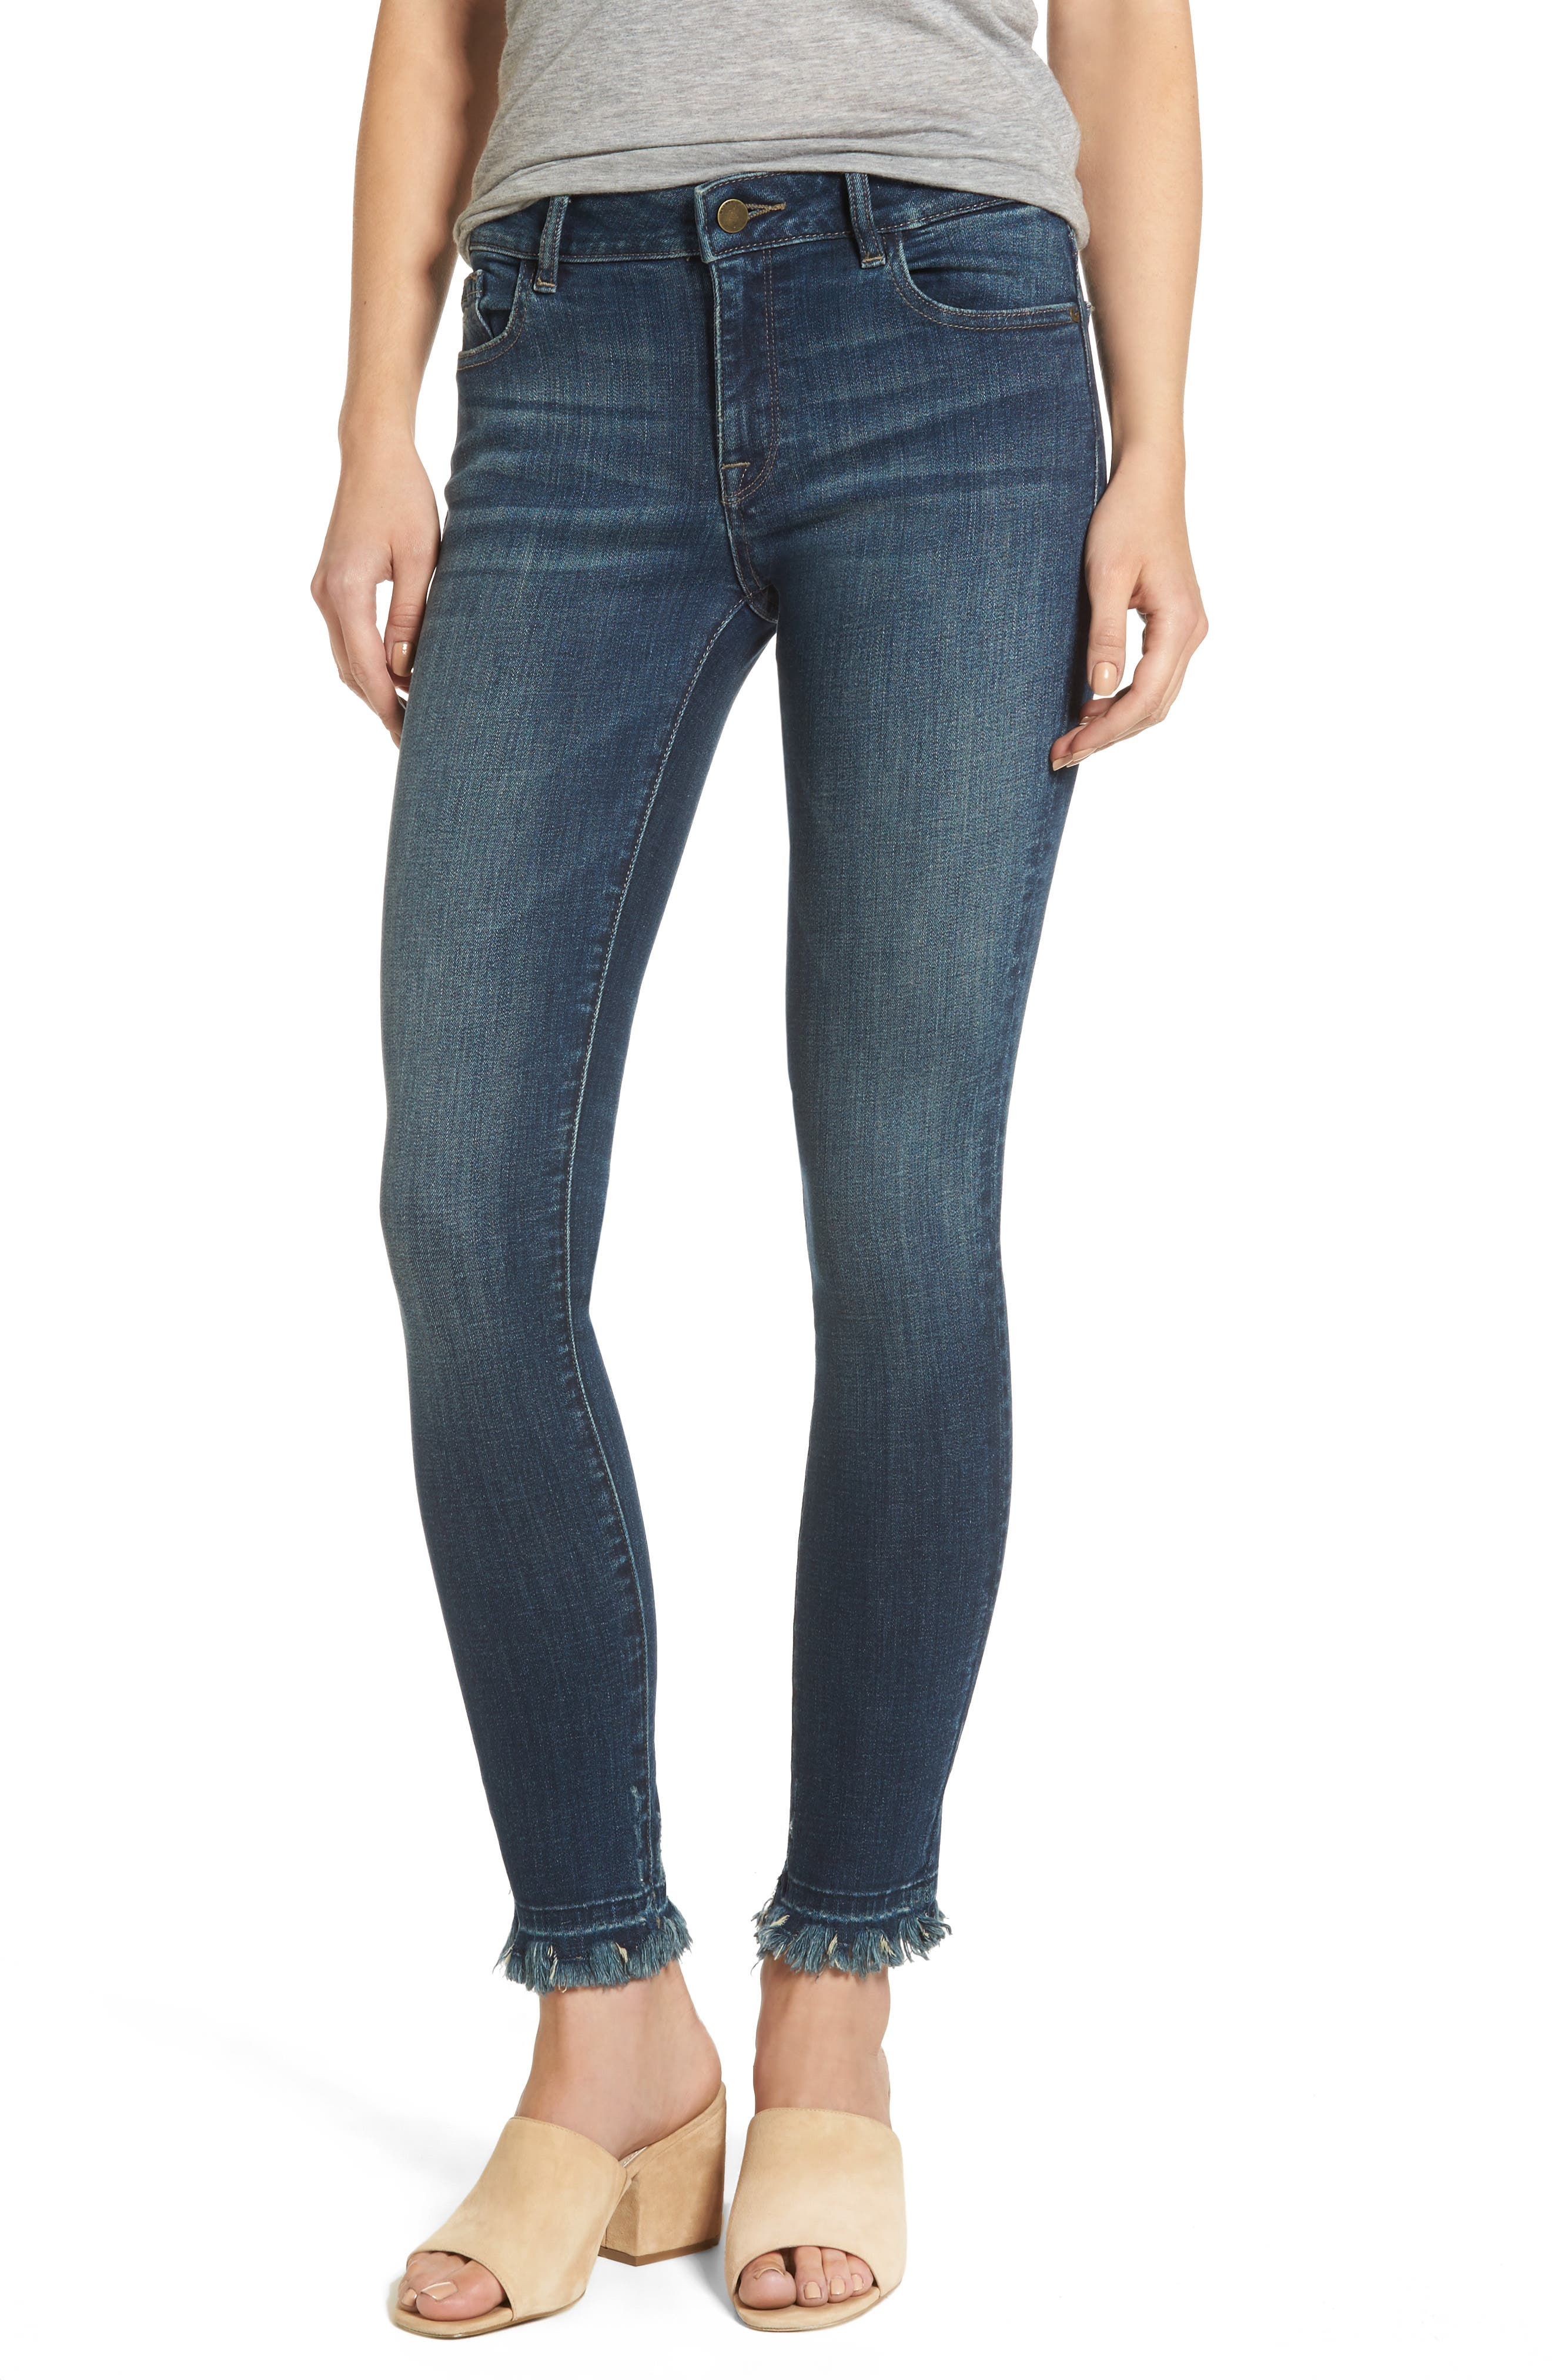 Main Image - DL1961 Margaux Instasculpt Ankle Skinny Jeans (Harlow)